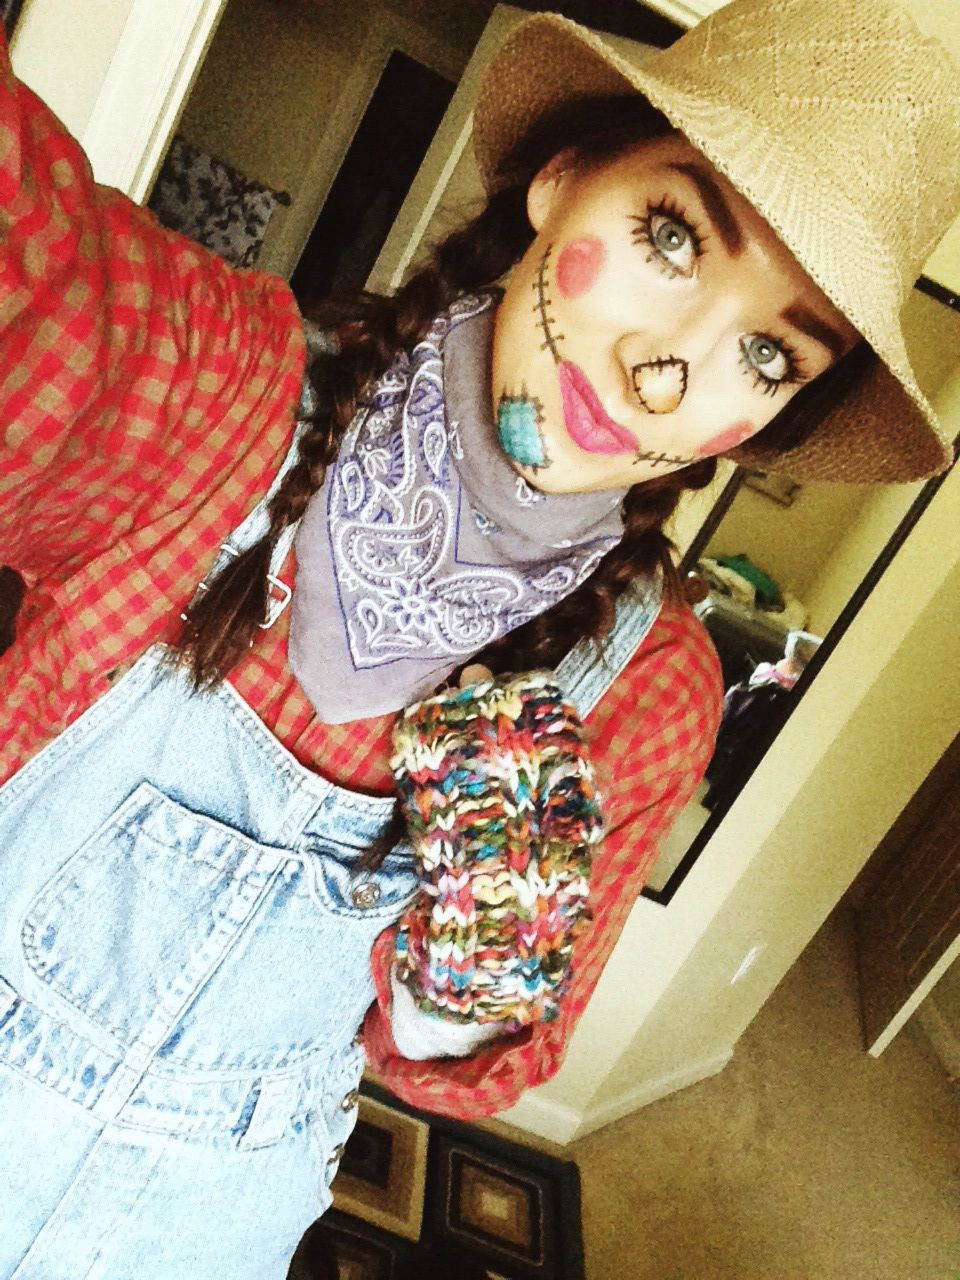 the make up | Holiday ideas - Halloween costume & Make-up ...